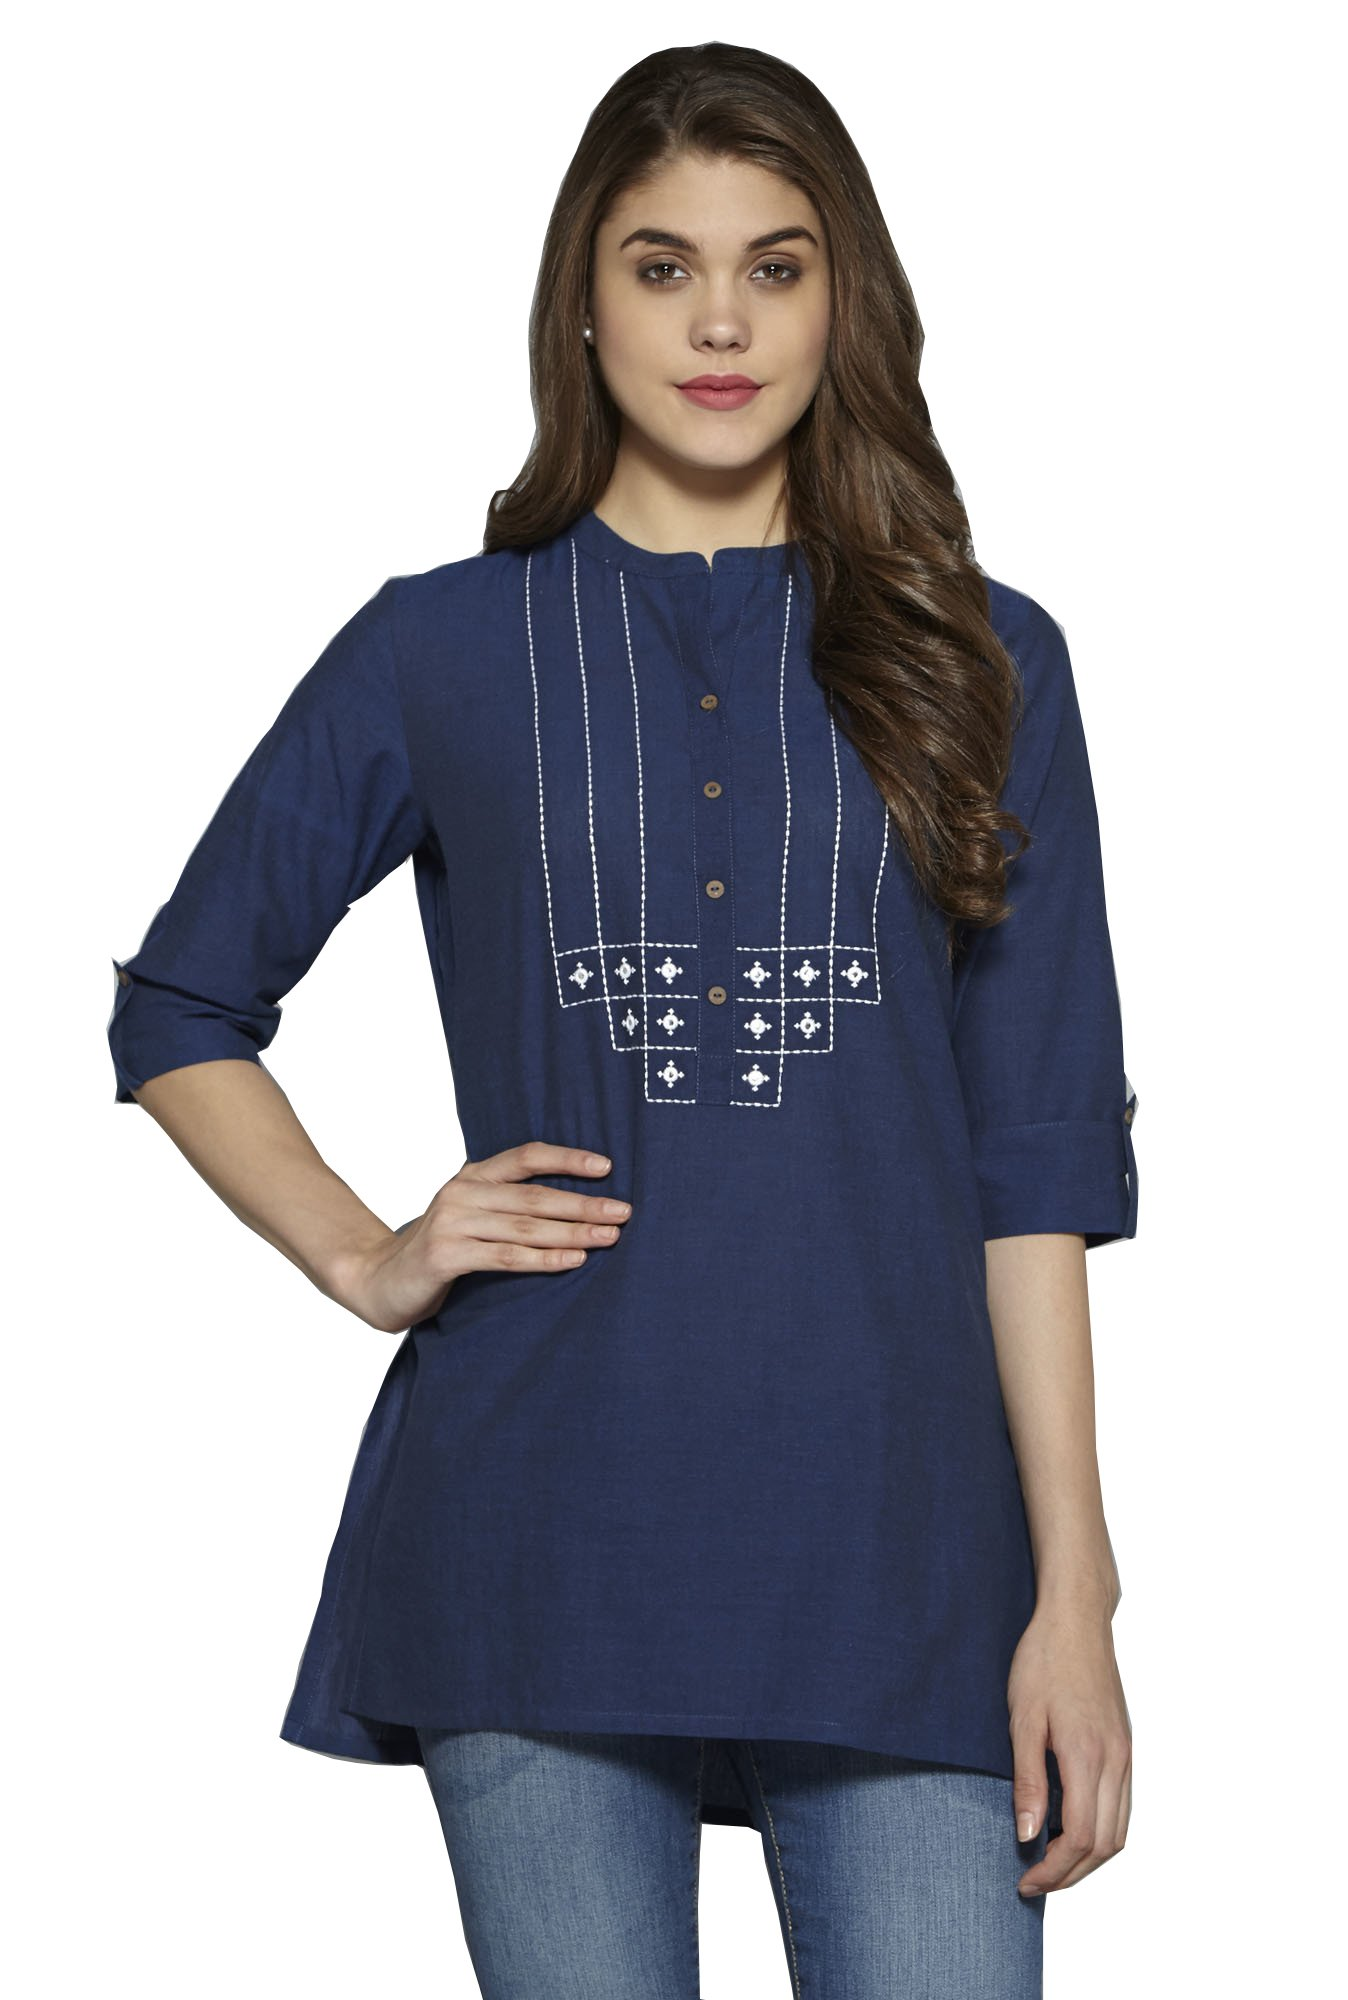 Aahwan Indian Kurtis for Women Solid Cotton Short Straight Embroidered Half Sleeve Hip Long Tunic